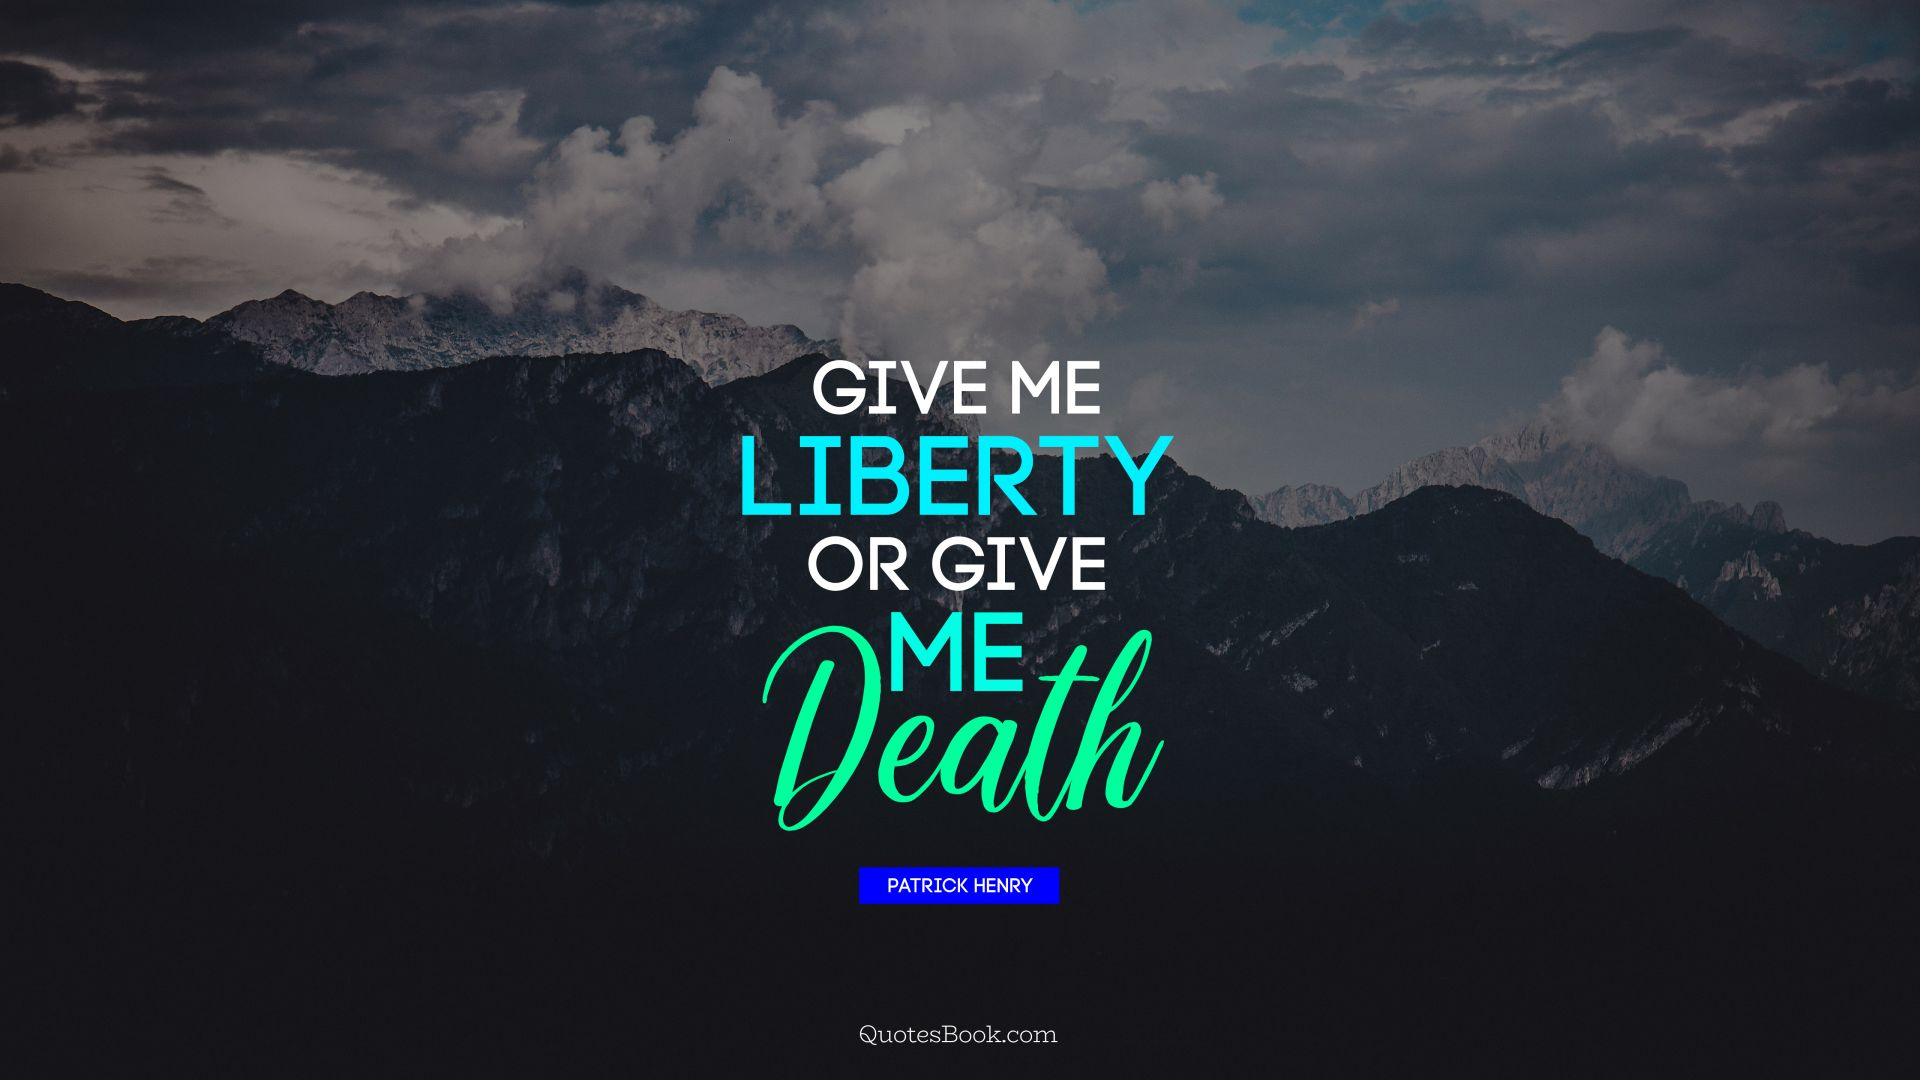 Give me liberty or give me death. - Quote by Patrick Henry